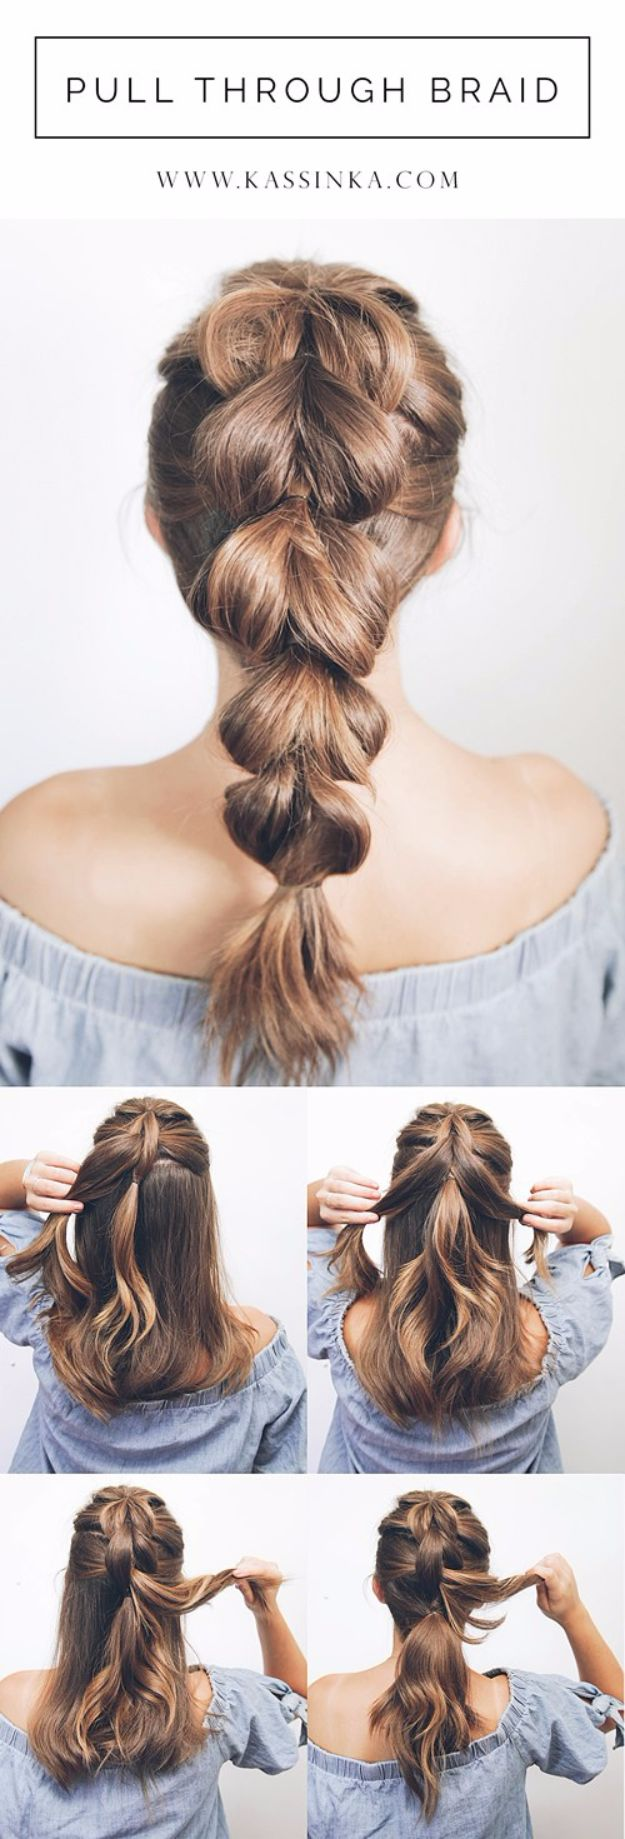 Cool Hair Tutorials for Summer - Pull Through Braid Tutorial - Easy Hairstyles and Creative Looks for Hair - Beachy Waves, Hair Styles for Short Hair, Medium Length and Long Hair - Ponytails, Updo Ideas and Quick Last Minute Hairstyle for Teens, Teenagers and Women http://diyprojectsforteens.com/cool-hairstyles-summer